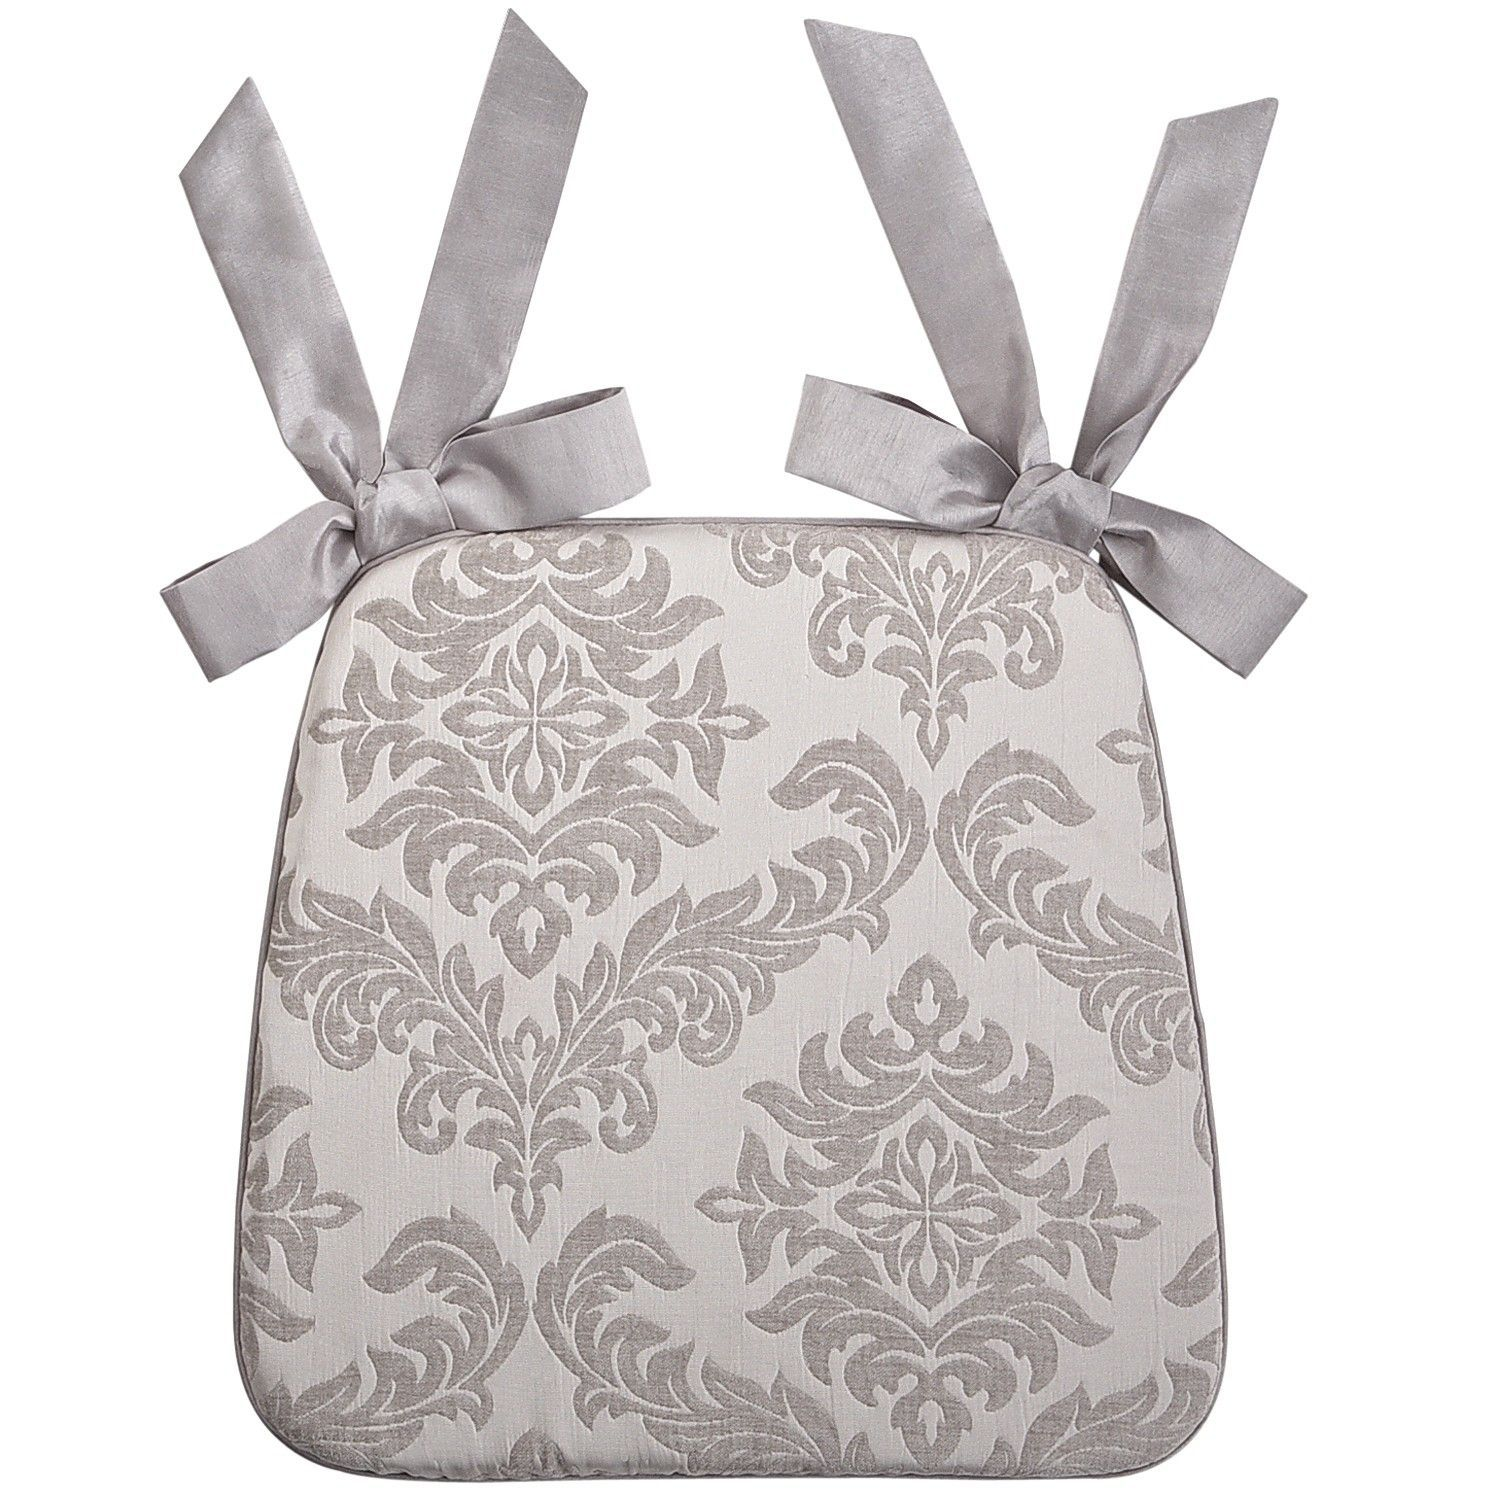 Damask Dining Cushion Silver Pier 1 Imports Kitchen Chair Cushions Dining Chair Cushions Chair Cushions